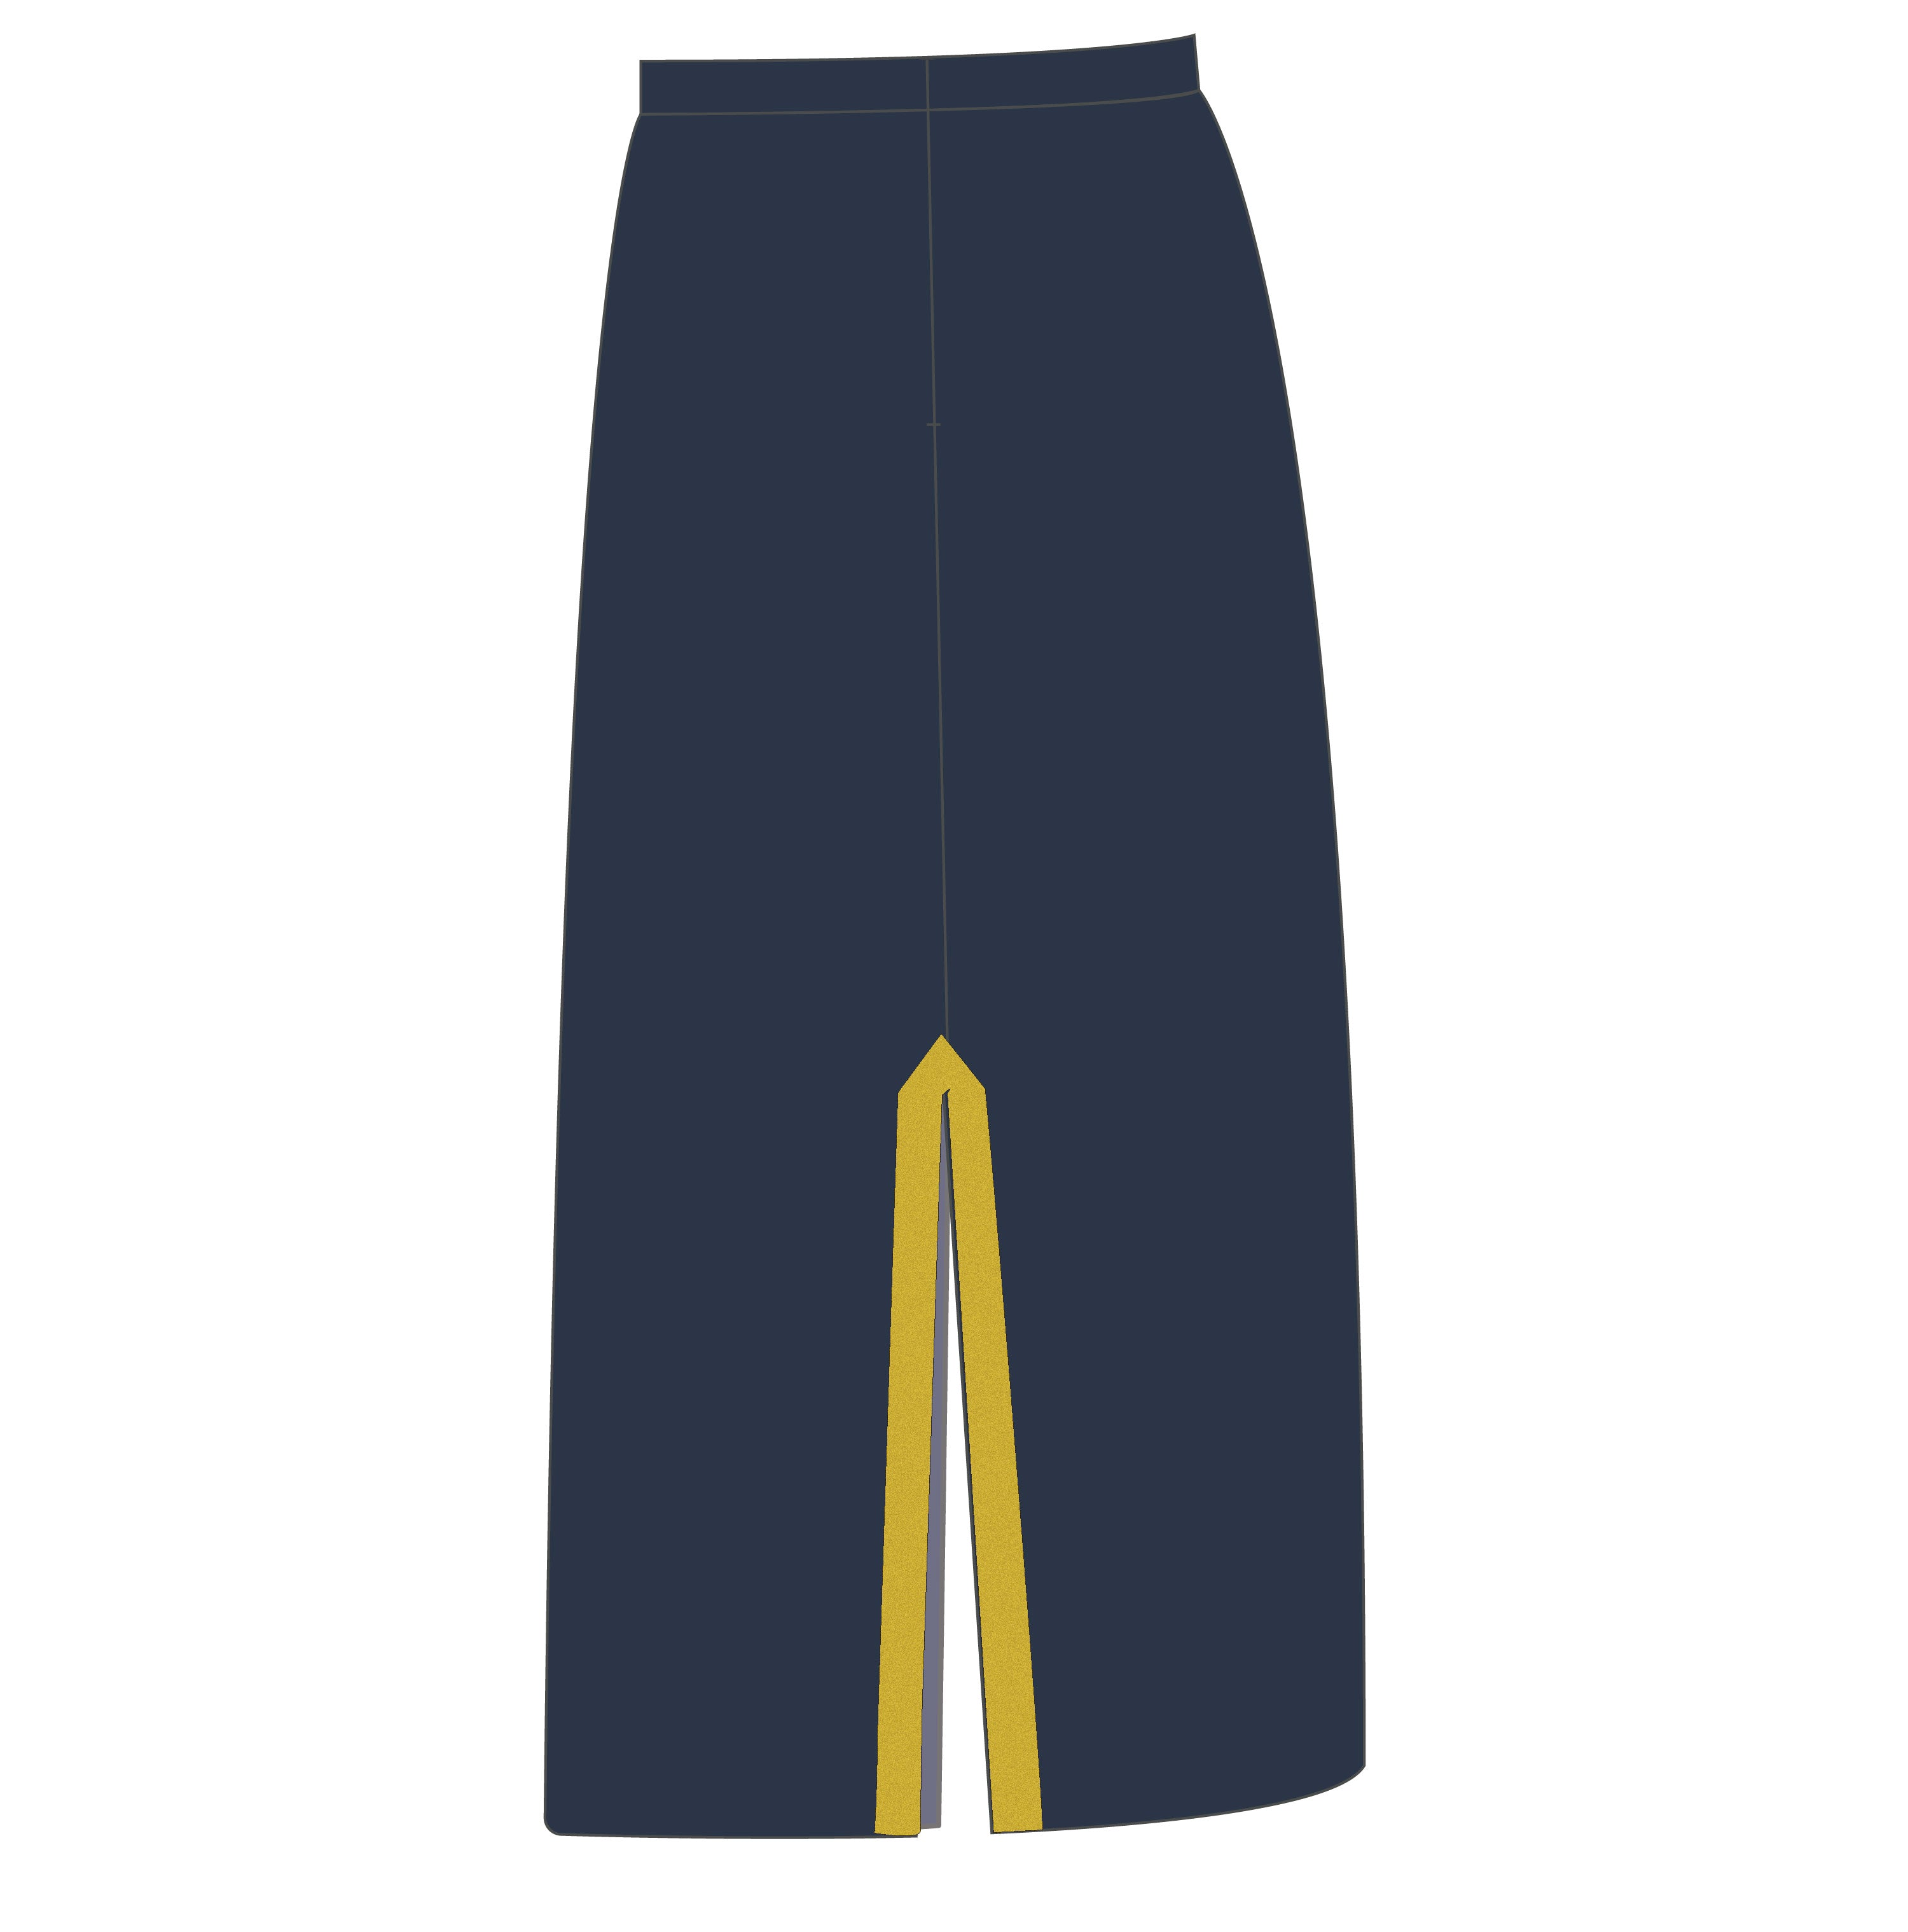 NO. 2 MESS STANDARD:  AIR FORCE - SKIRT - FEMALE